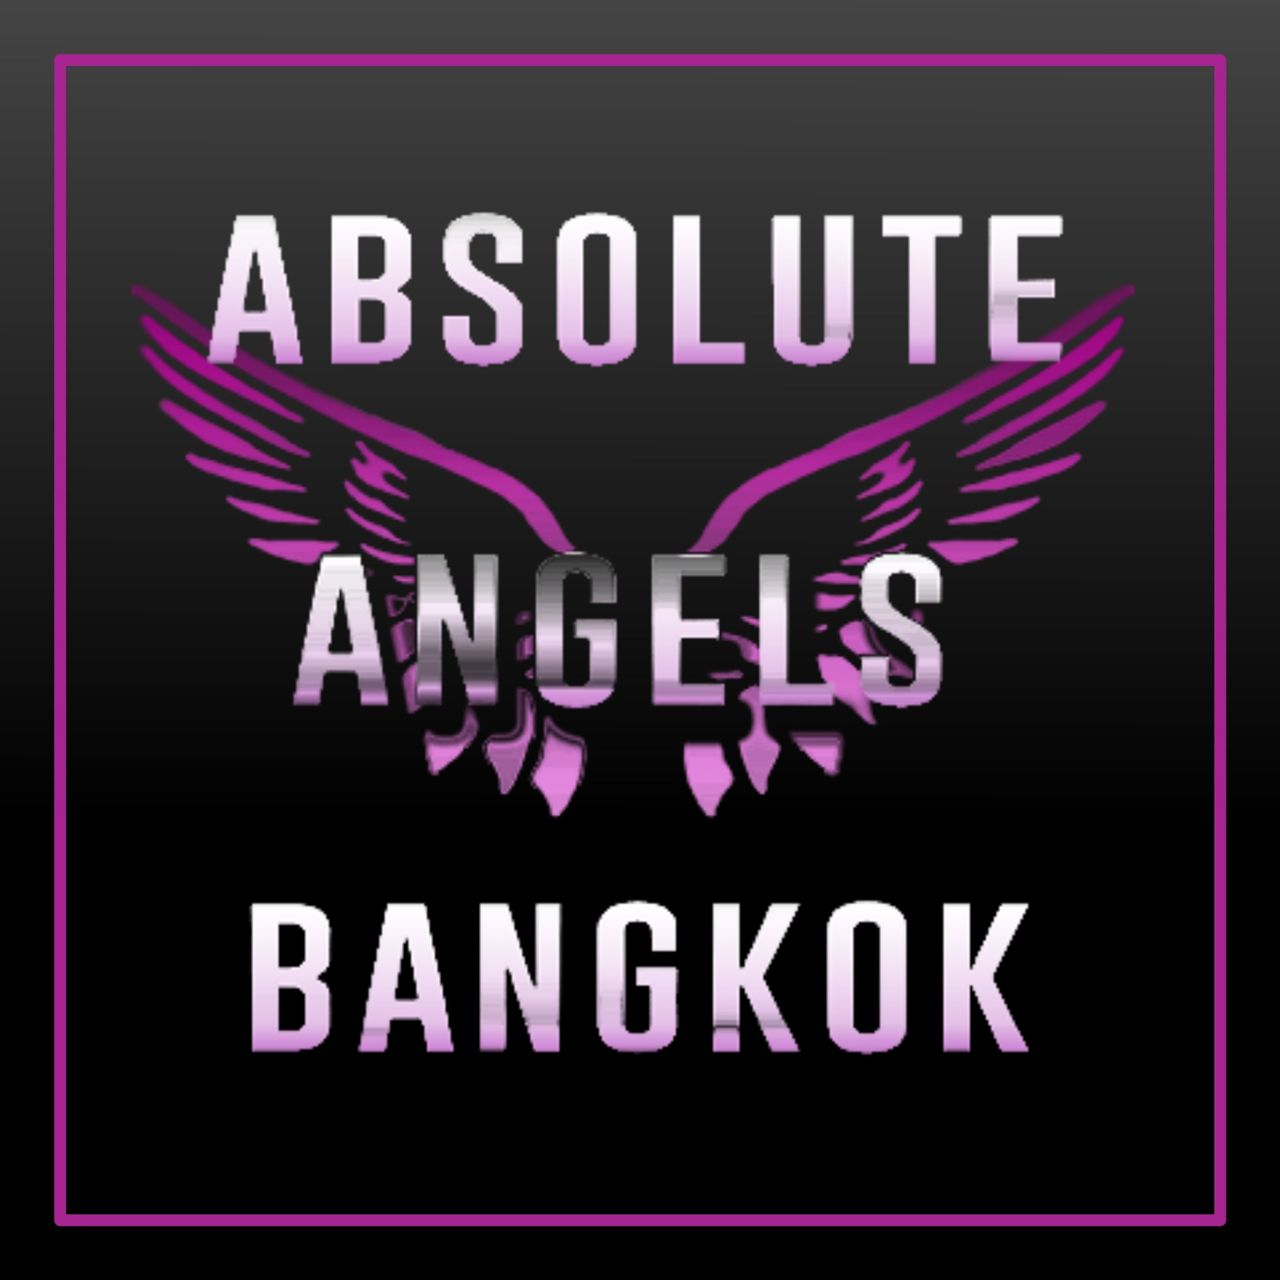 Absolute Angels Bangkok